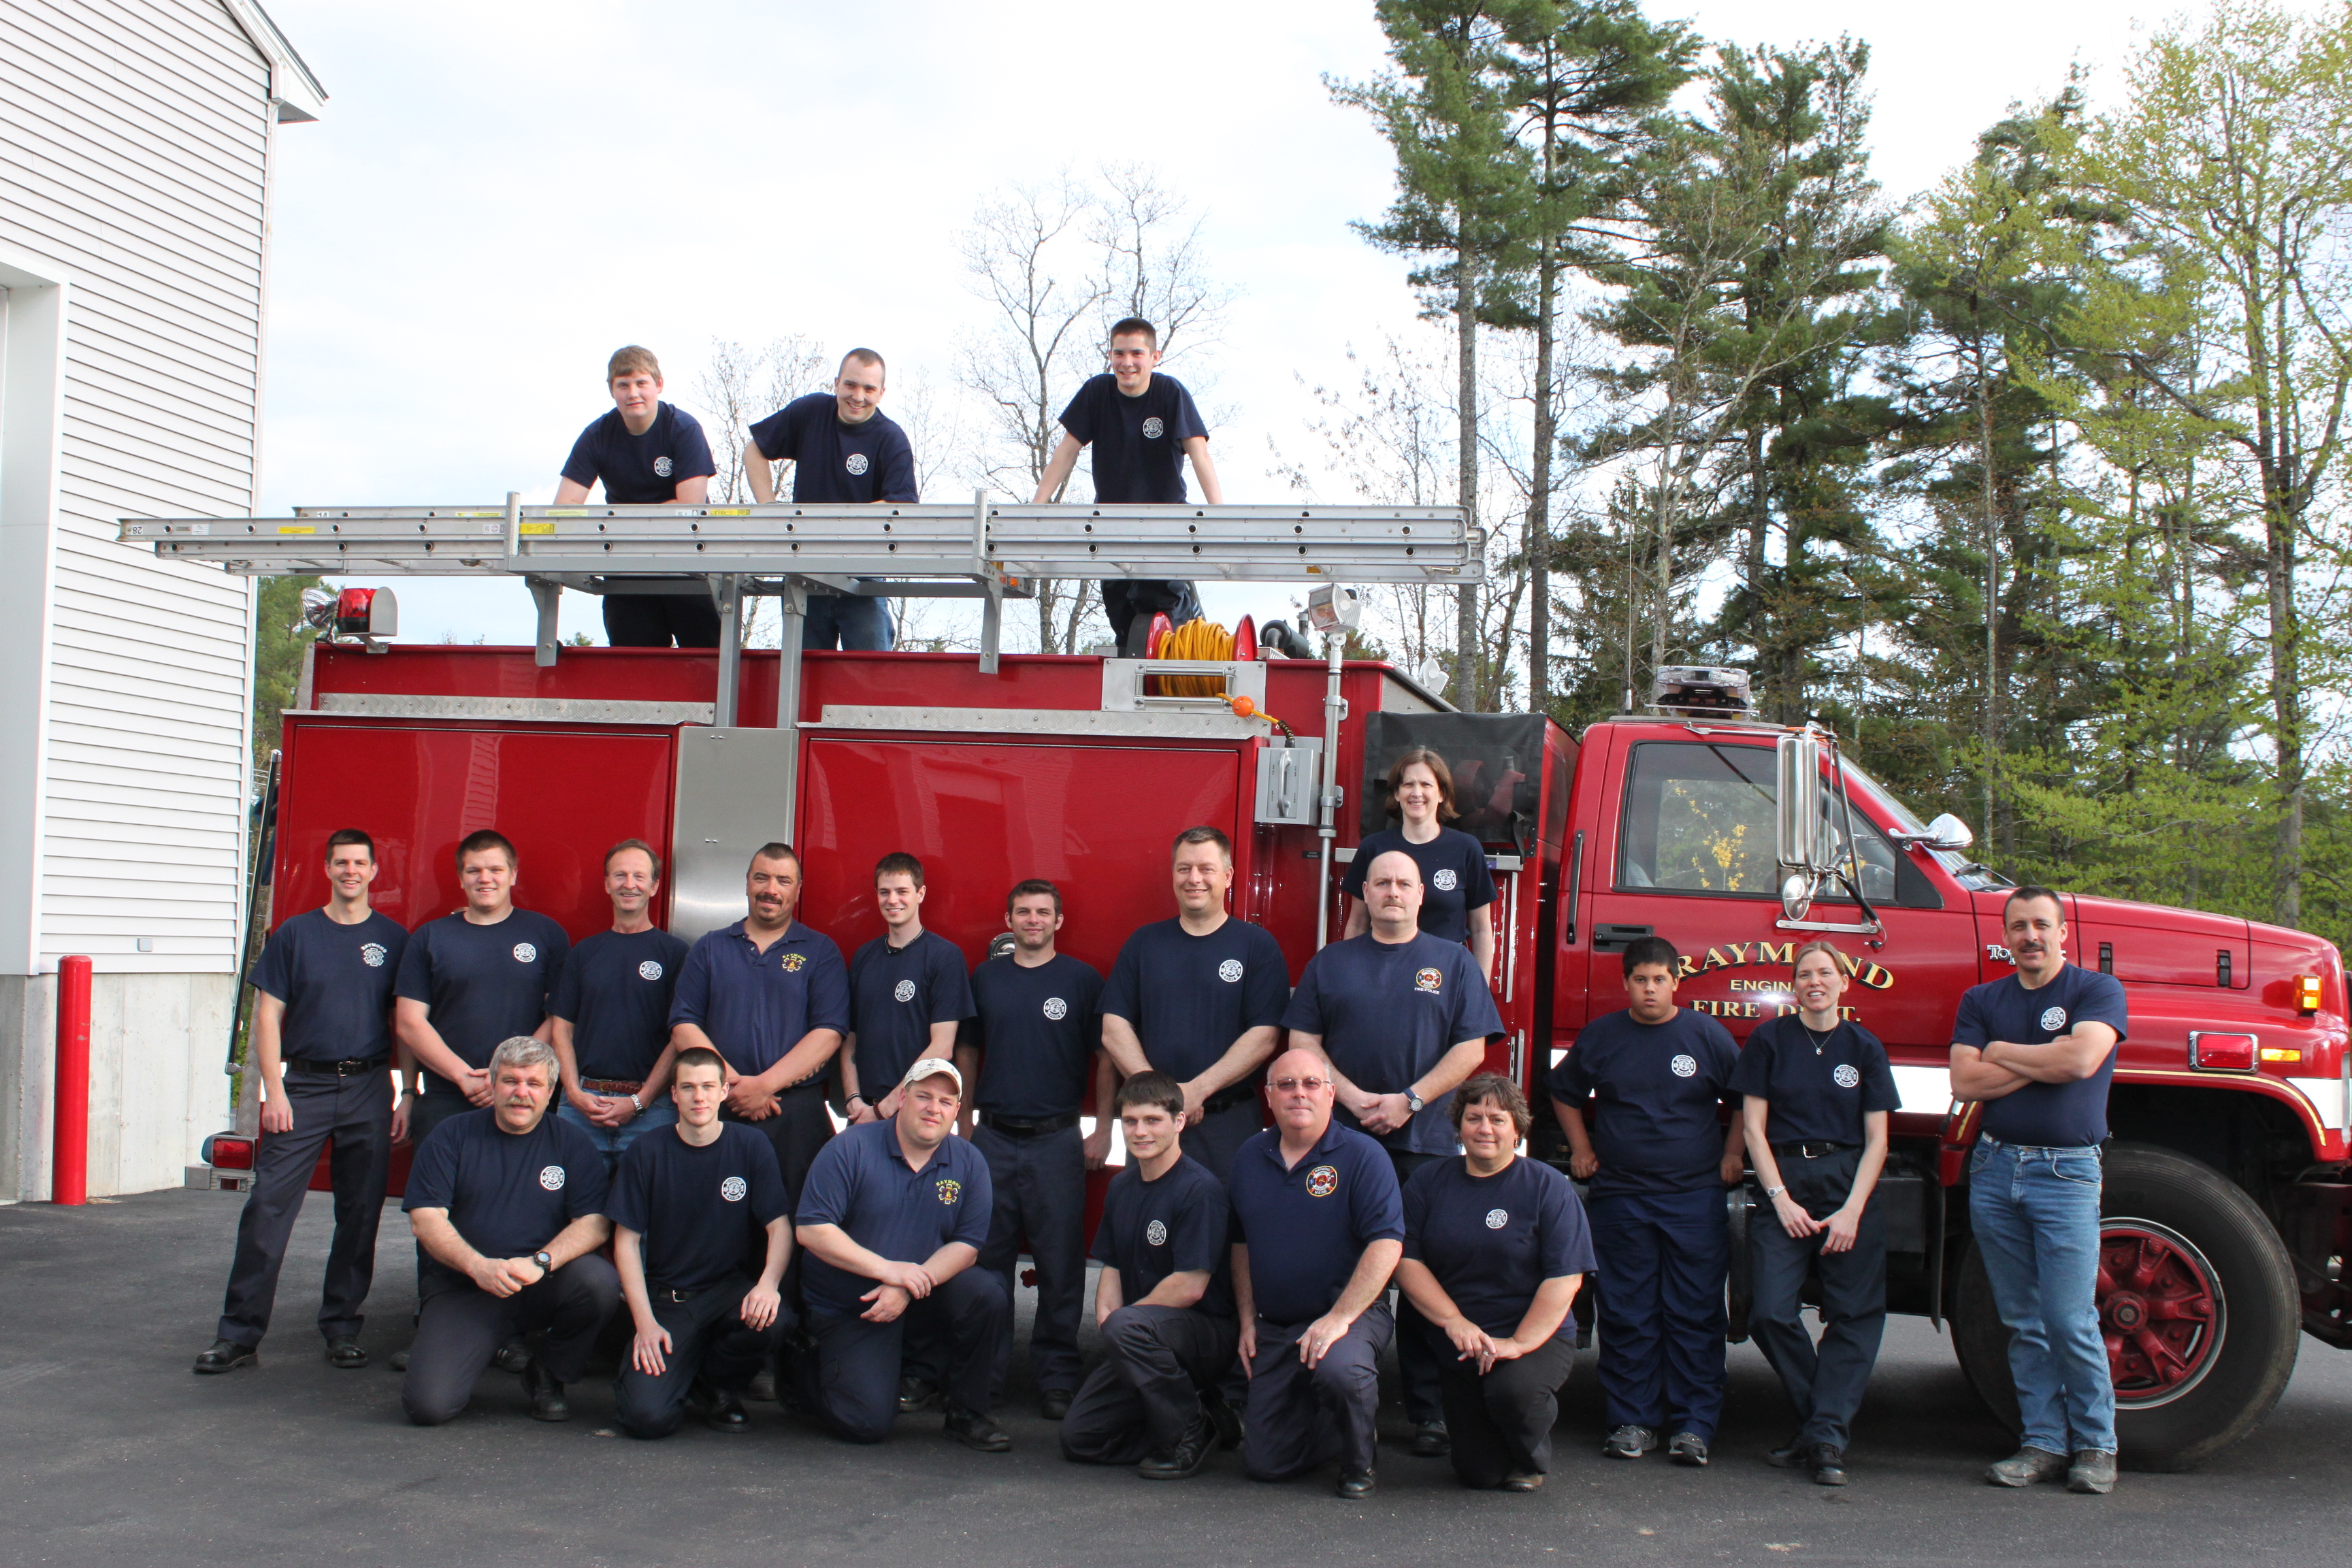 Fire and Rescue | Town of Raymond, Maine